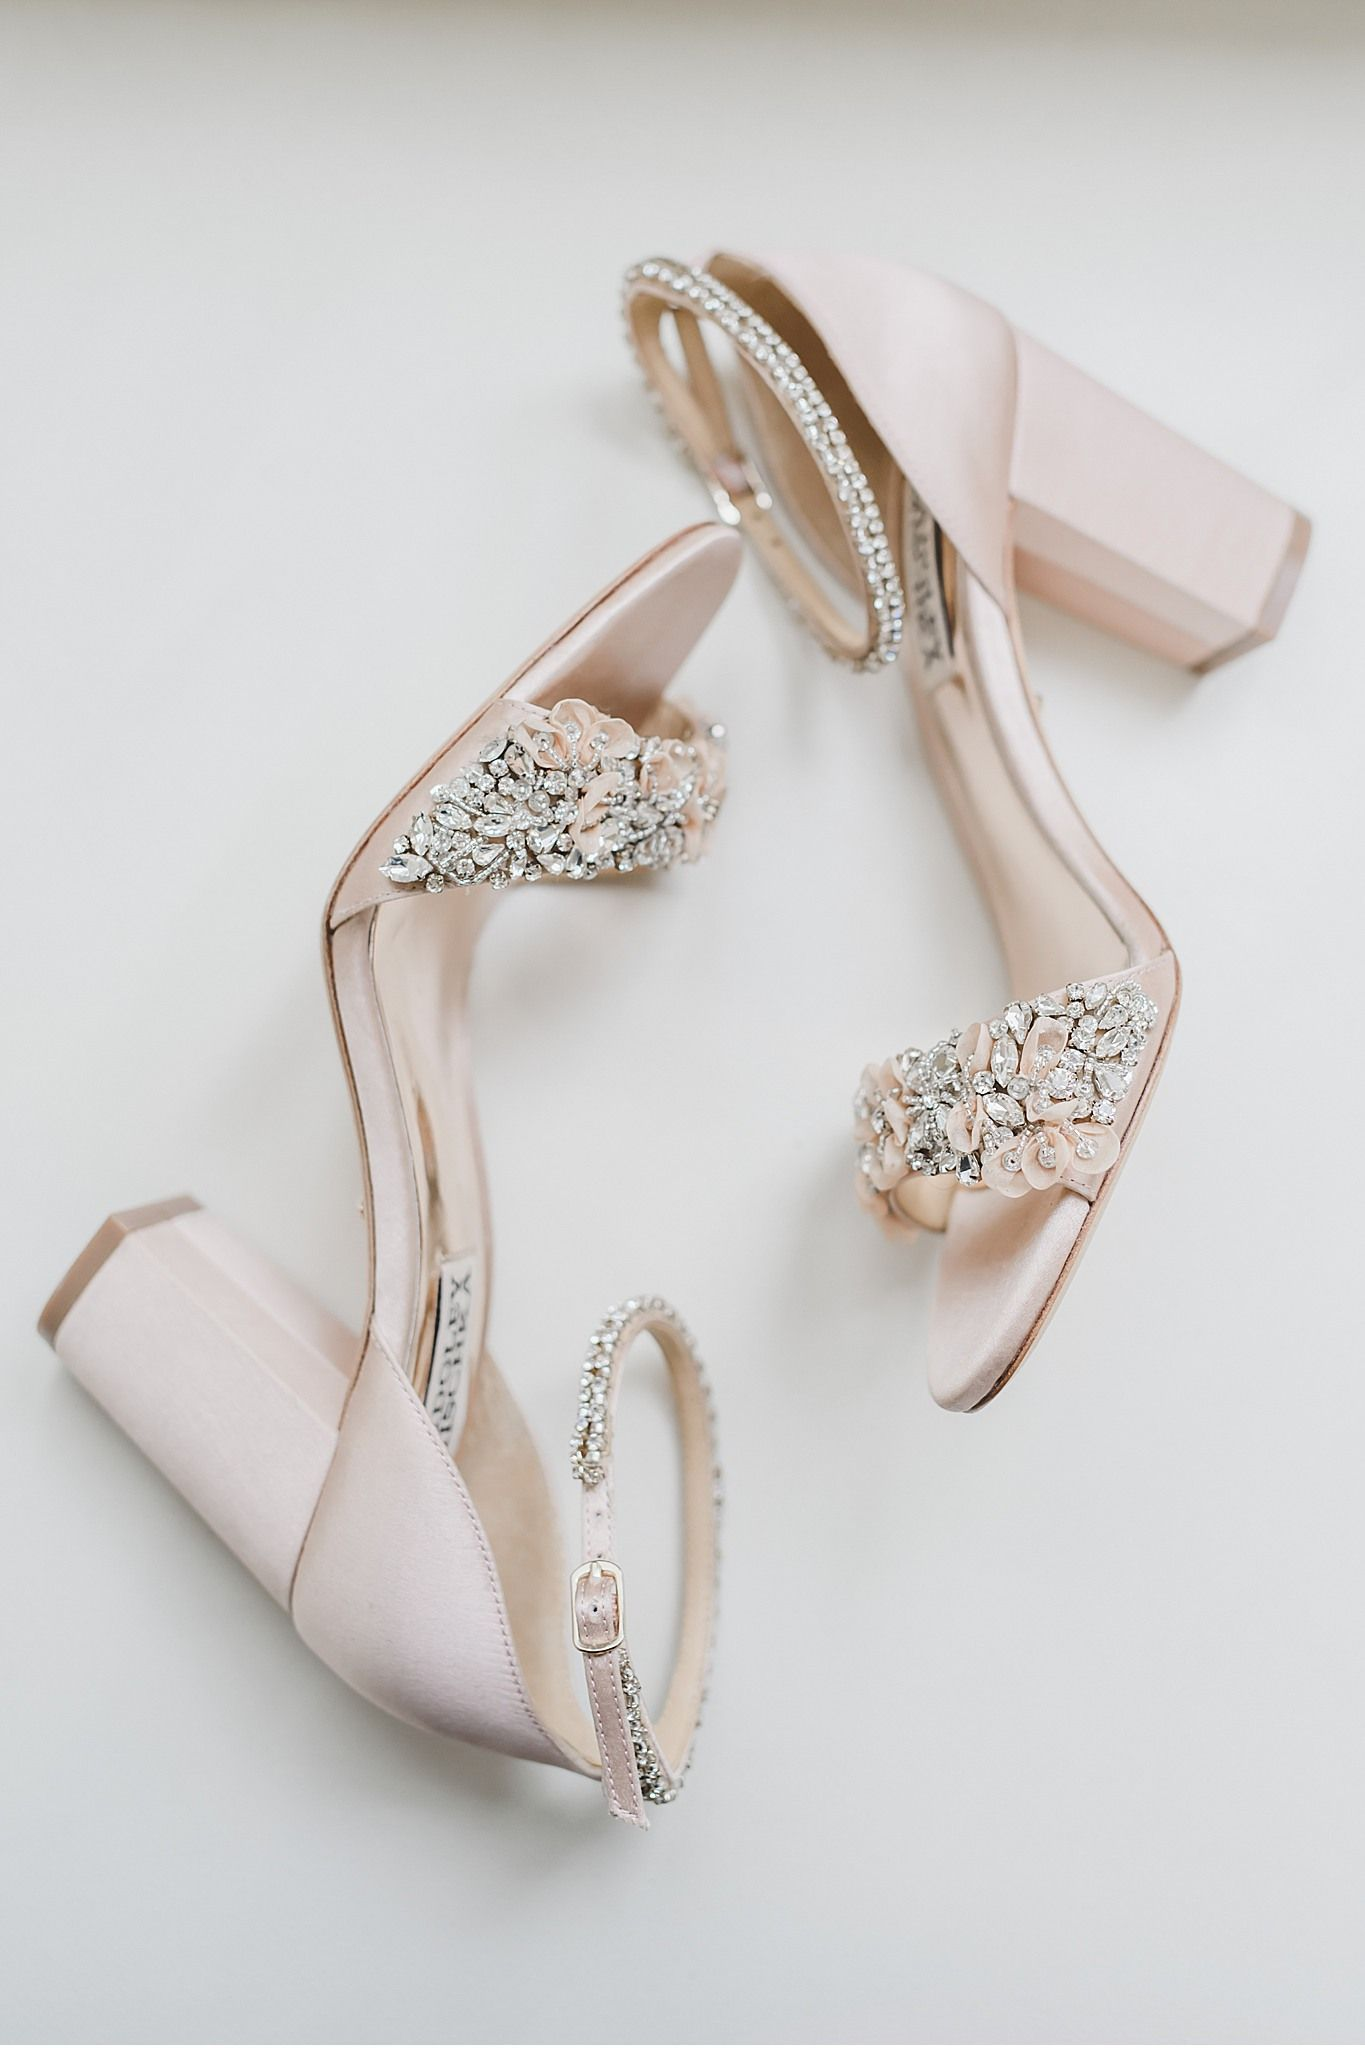 The simplicity of a pair of soft blush Badgley Mischka shoes can't be matched for a bride on her Wedding Day! | Annie Sharp Photography #MoonstoneManor #CameronEstates #LancasterPA #SummerWedding #LancasterPAWeddingPhotographer #LancasterPAWeddingPhotography #MoonstoneManorWeddingPhototgrapher #BadgleyMischkaBridal #BadgleyMischkabridalshoes #blush #weddingdetails #destinationphotographer #PhiladelphiaWeddingPhotographer #Phillybride #PhillyWedding